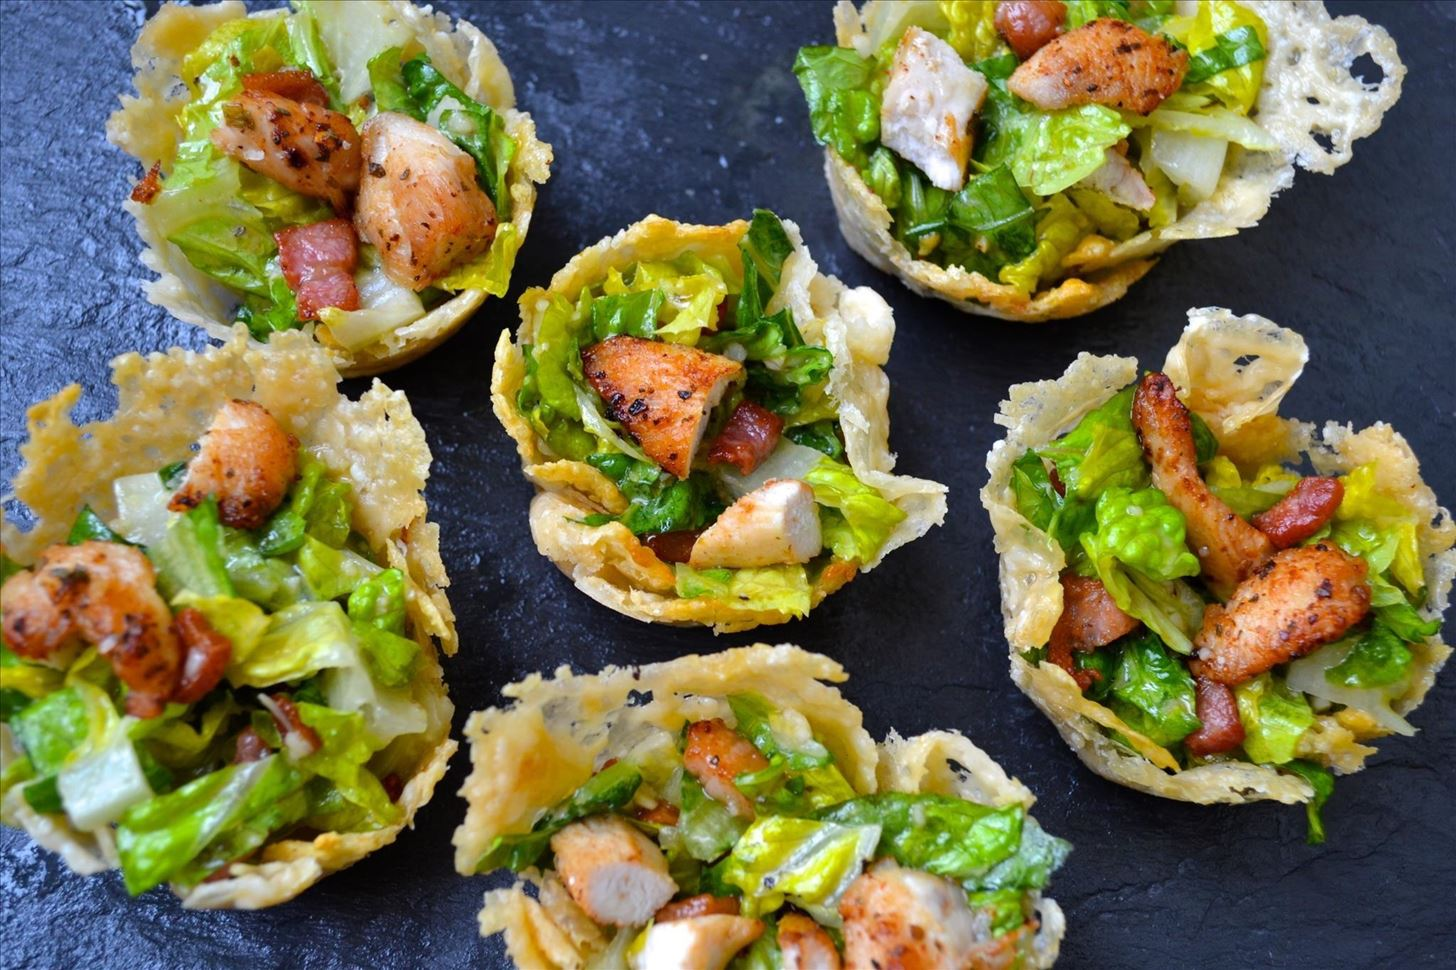 These 7 Amazing Forkless Salads Are Perfect for Your Next Party